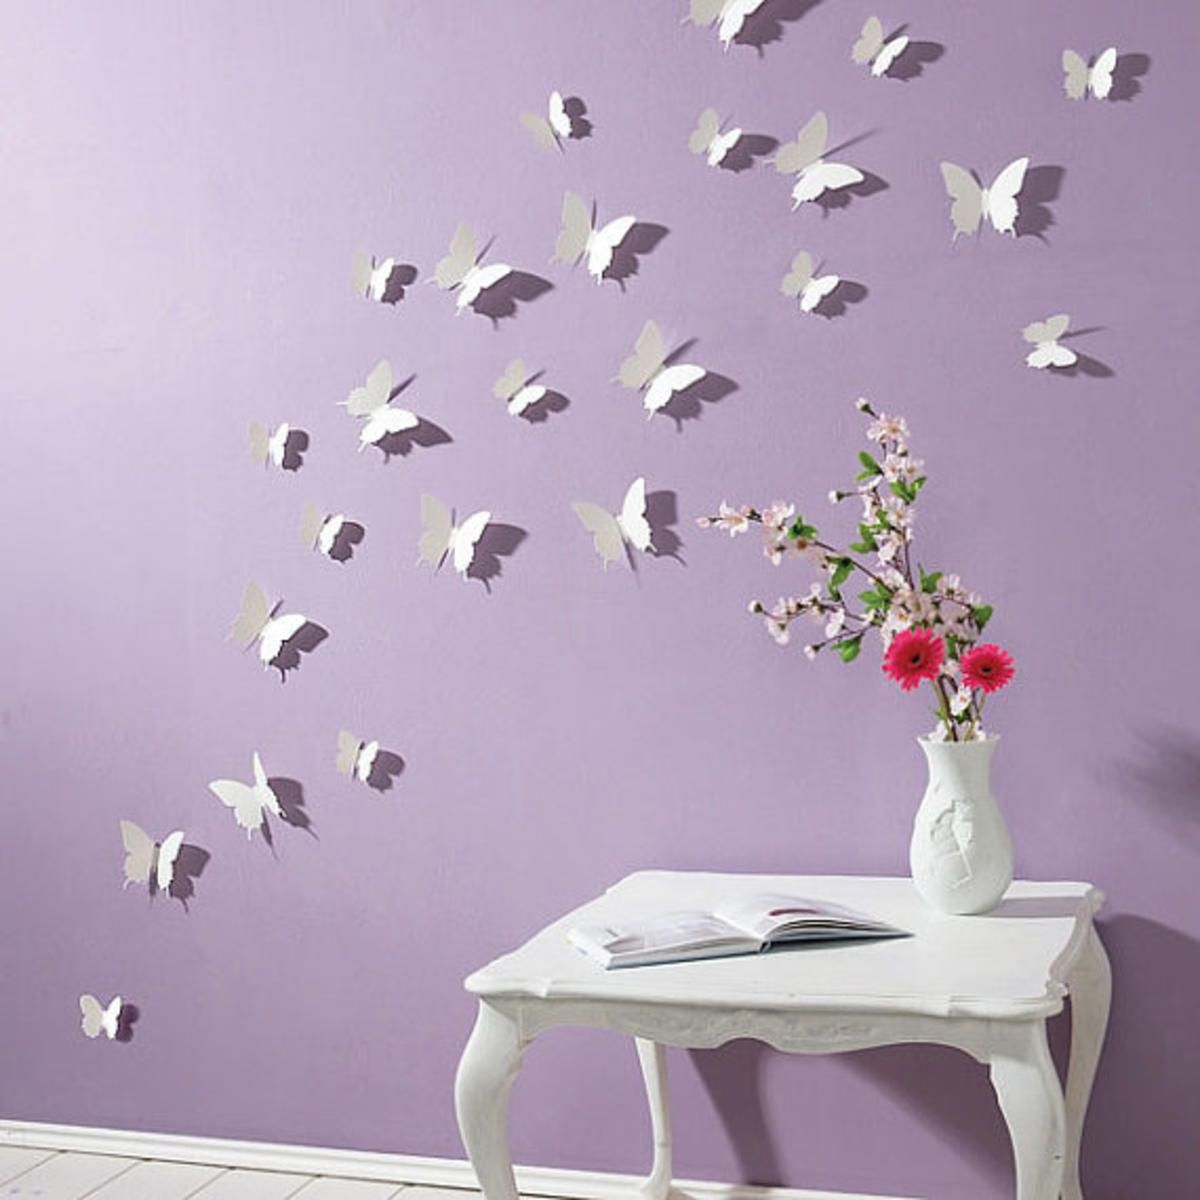 Butterfly 3 D Wall Decal Bedroom Pinterest Wall Decals Butterfly And Walls